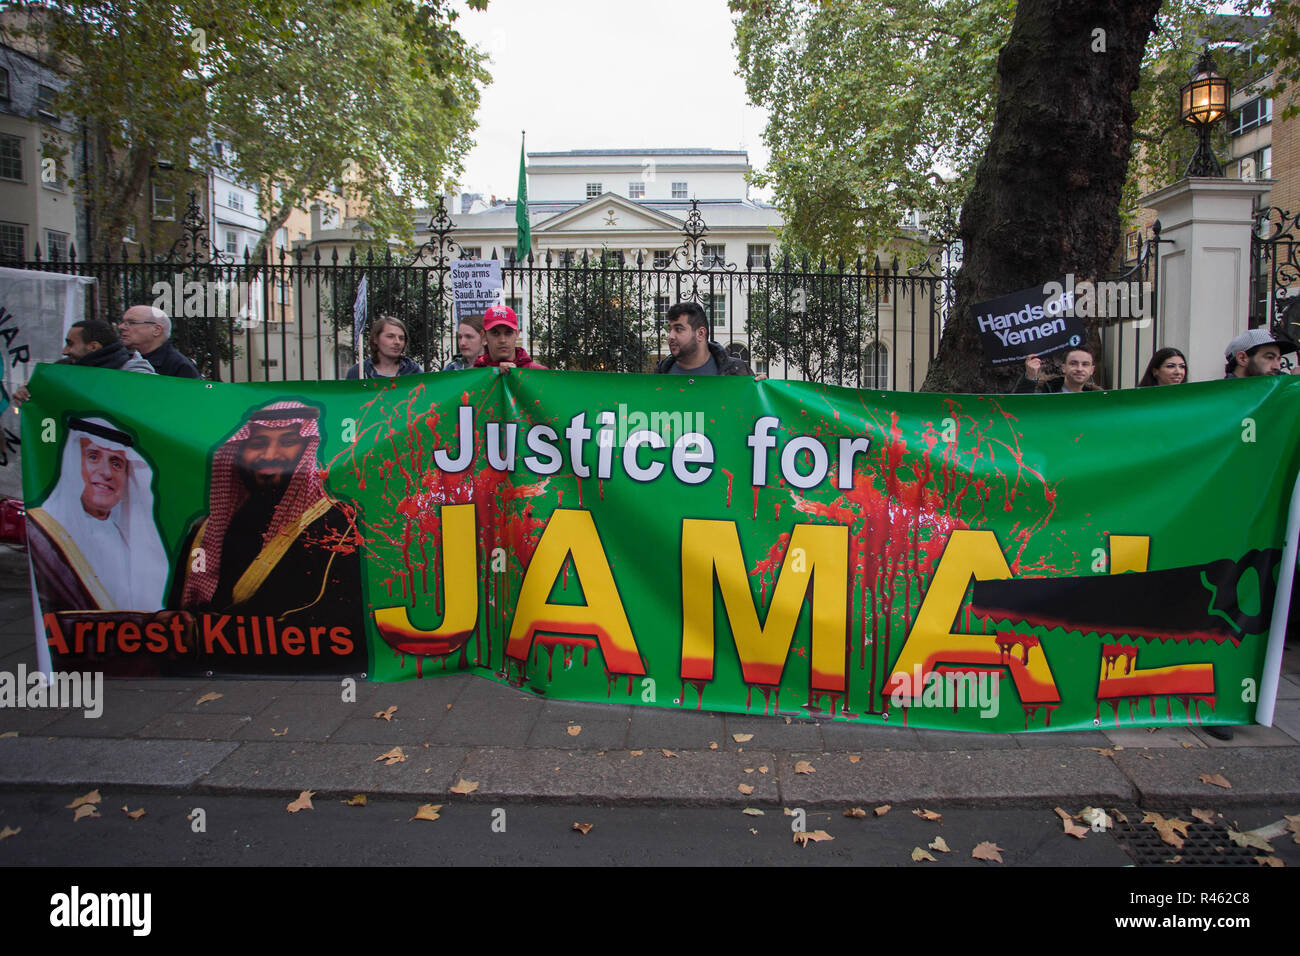 Protestors at the Saudi Arabia Embassy in London call for justice for murdered journalist Jamal Khashoggi and to end UK arms sales to Saudi Arabia  Featuring: Atmosphere, View Where: London, United Kingdom When: 25 Oct 2018 Credit: Wheatley/WENN - Stock Image